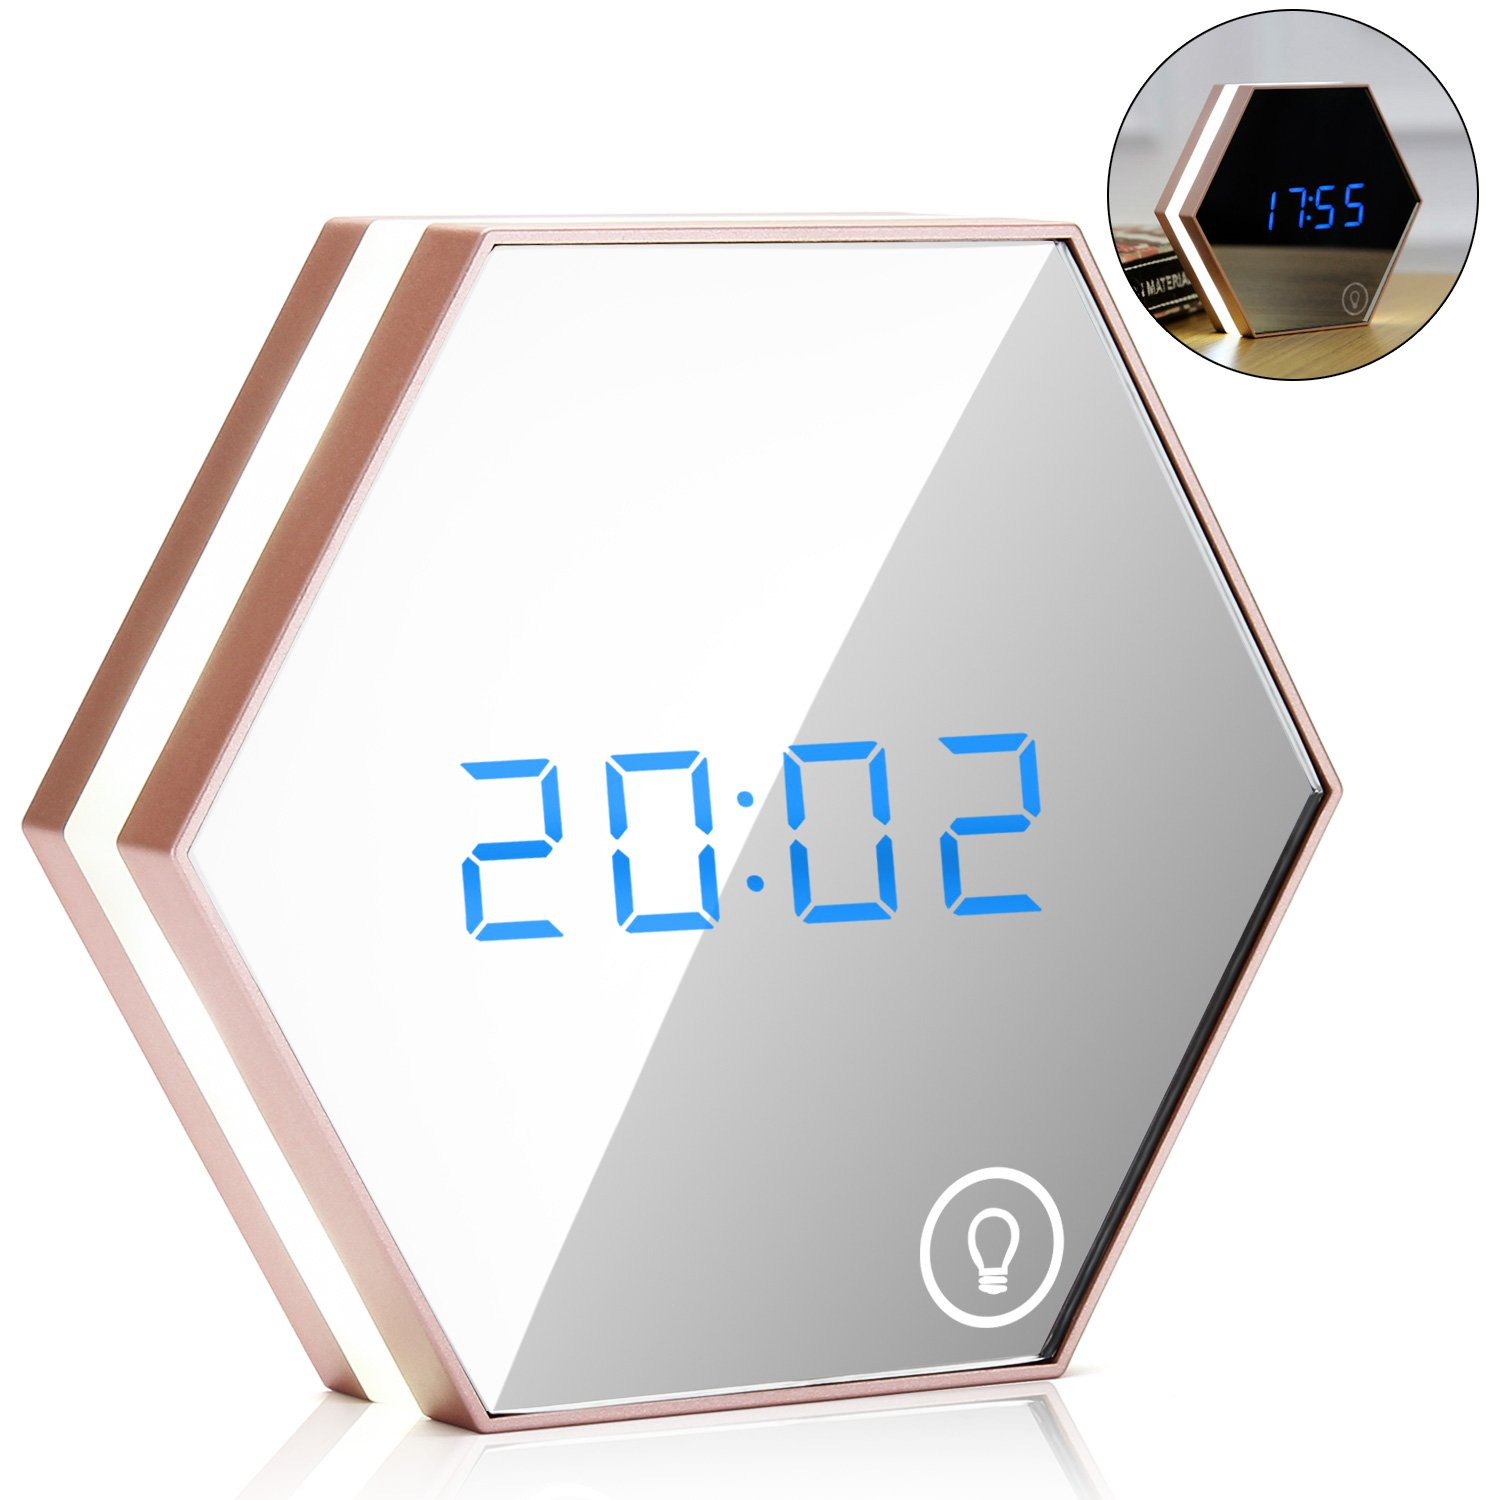 EnGive Multi-function Mirror Alarm Clock Rechargeable Portable Smart Led Digital with Time/Alarm/Temperature Display Desk or Room Decoration Travel Alarm Clock (Rose Gold) by ENGIVE